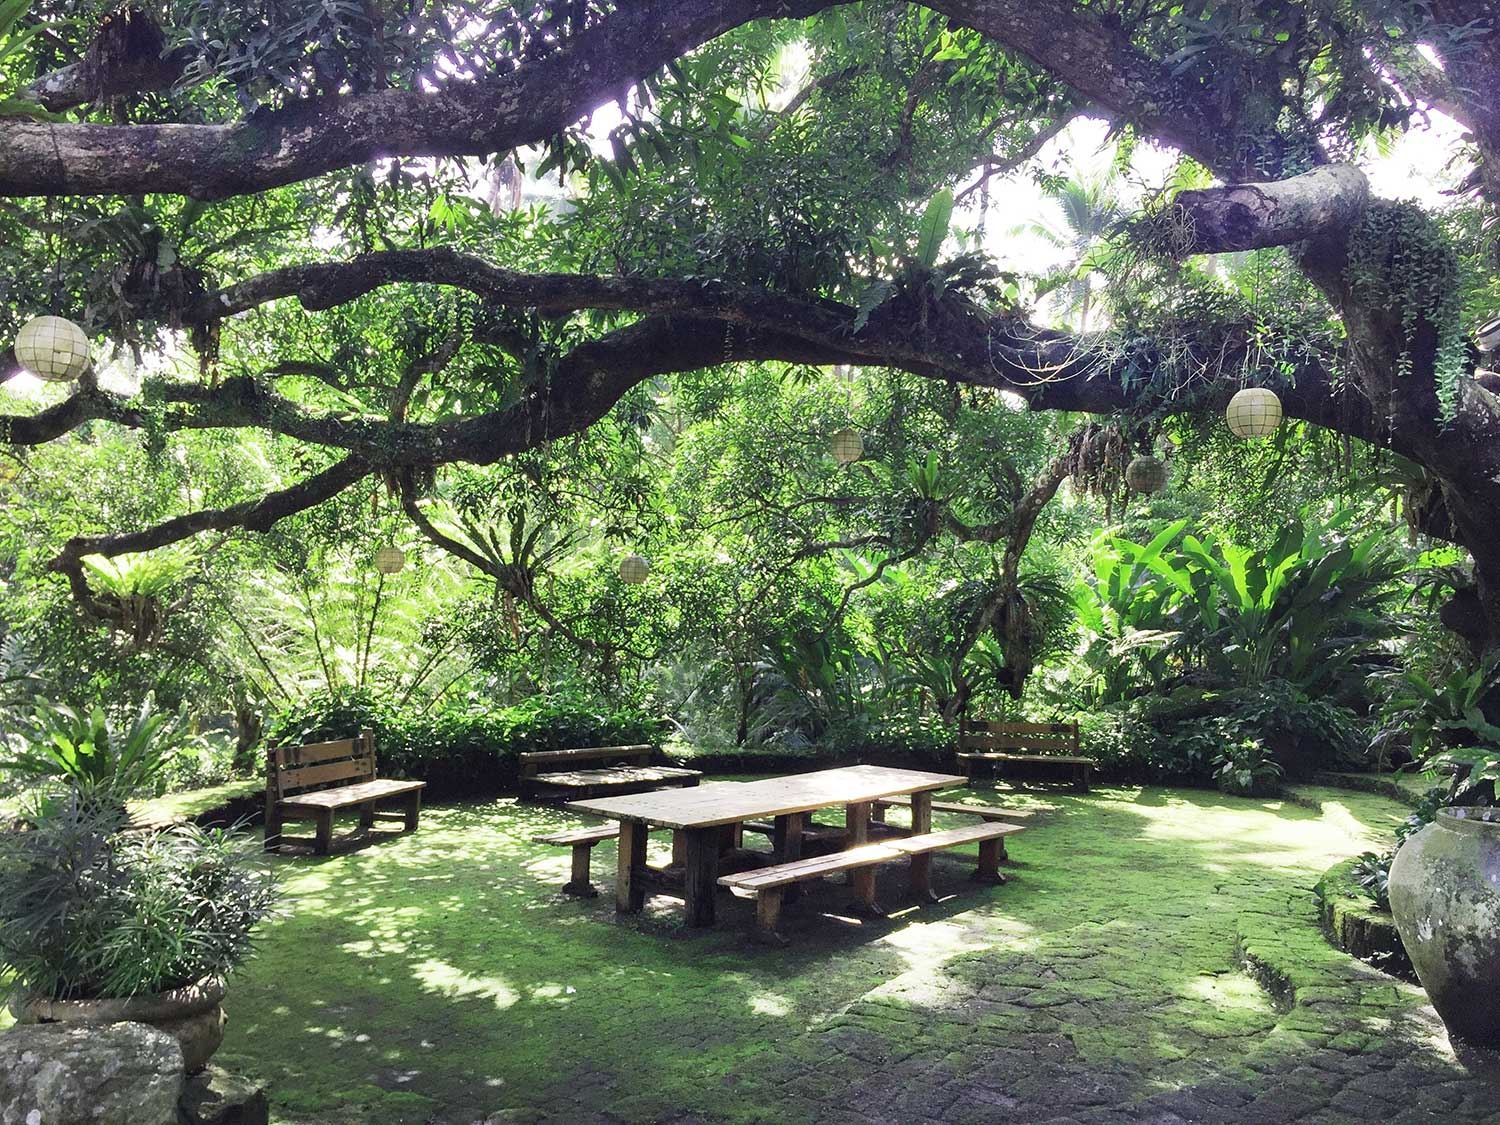 A huge old Banyan tree stretches over a picnic table in a lush green garden